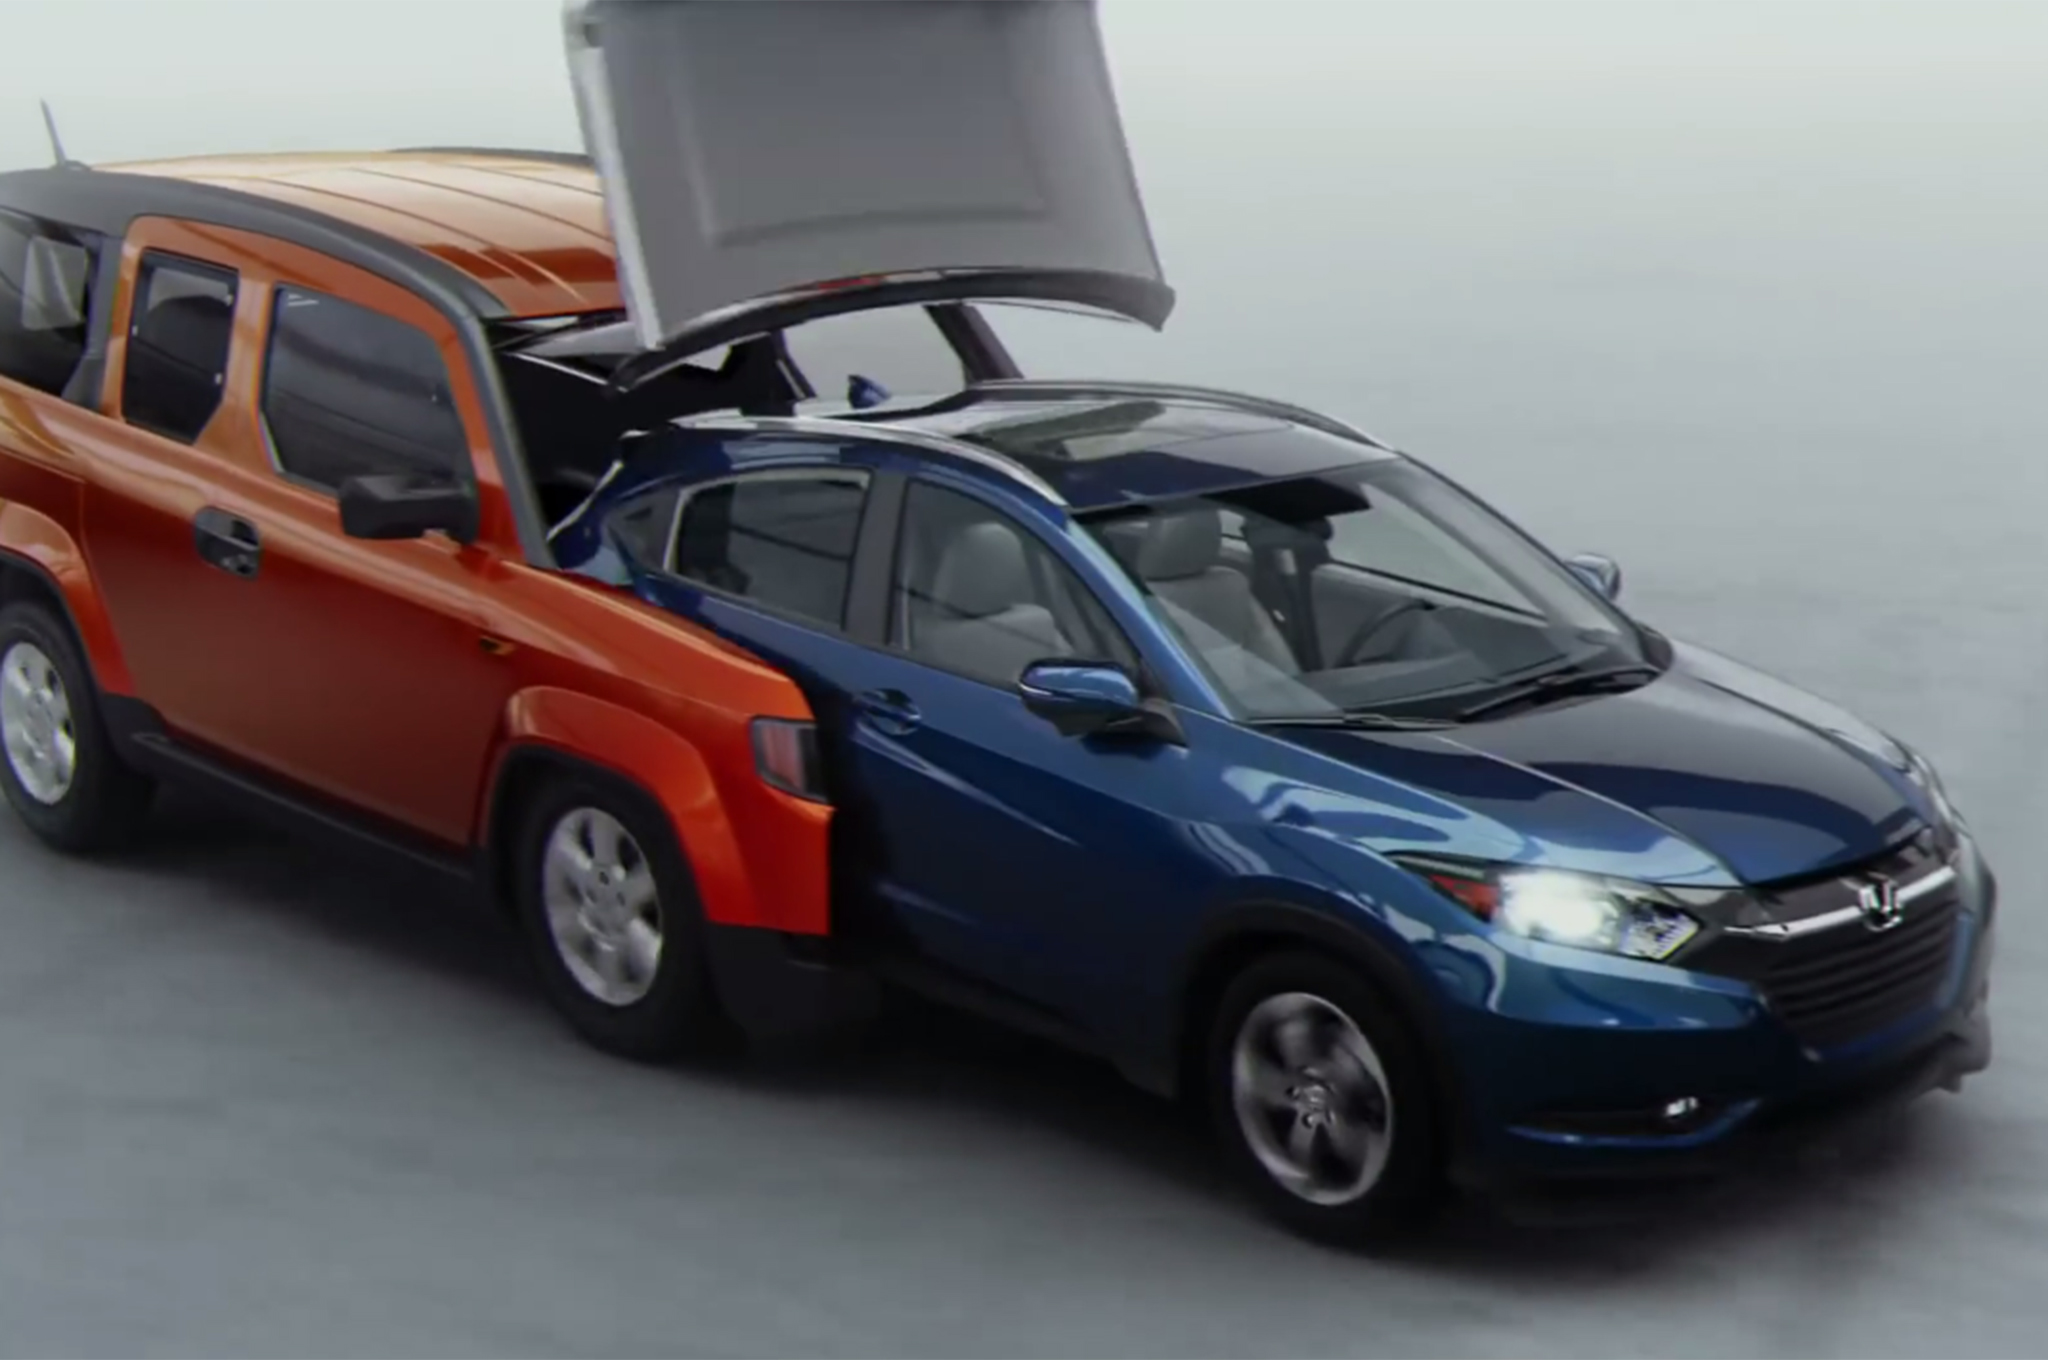 medium resolution of 2016 honda hr v ad features 7 hondas from the past motortrend 2000 honda civic wiring diagram 2002 honda cr v wiring diagram roof